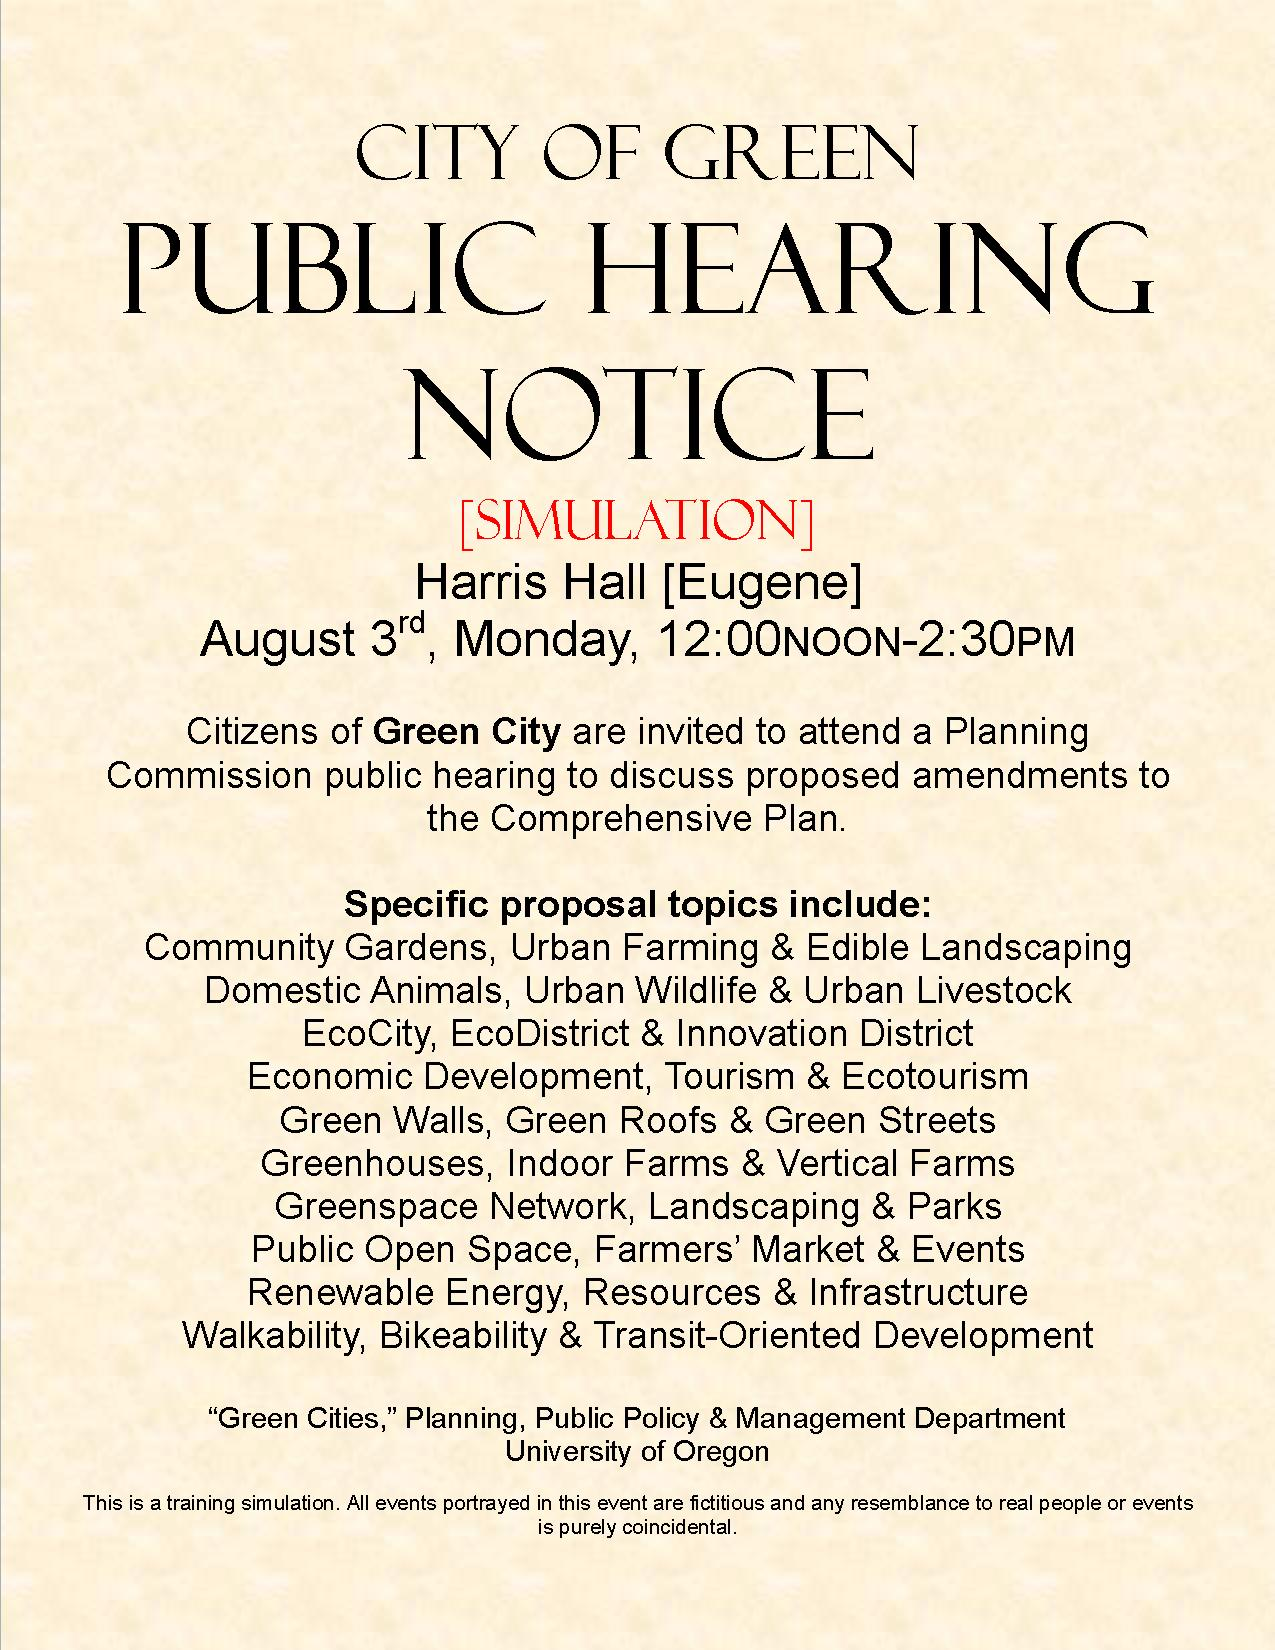 Public Hearing Simulation